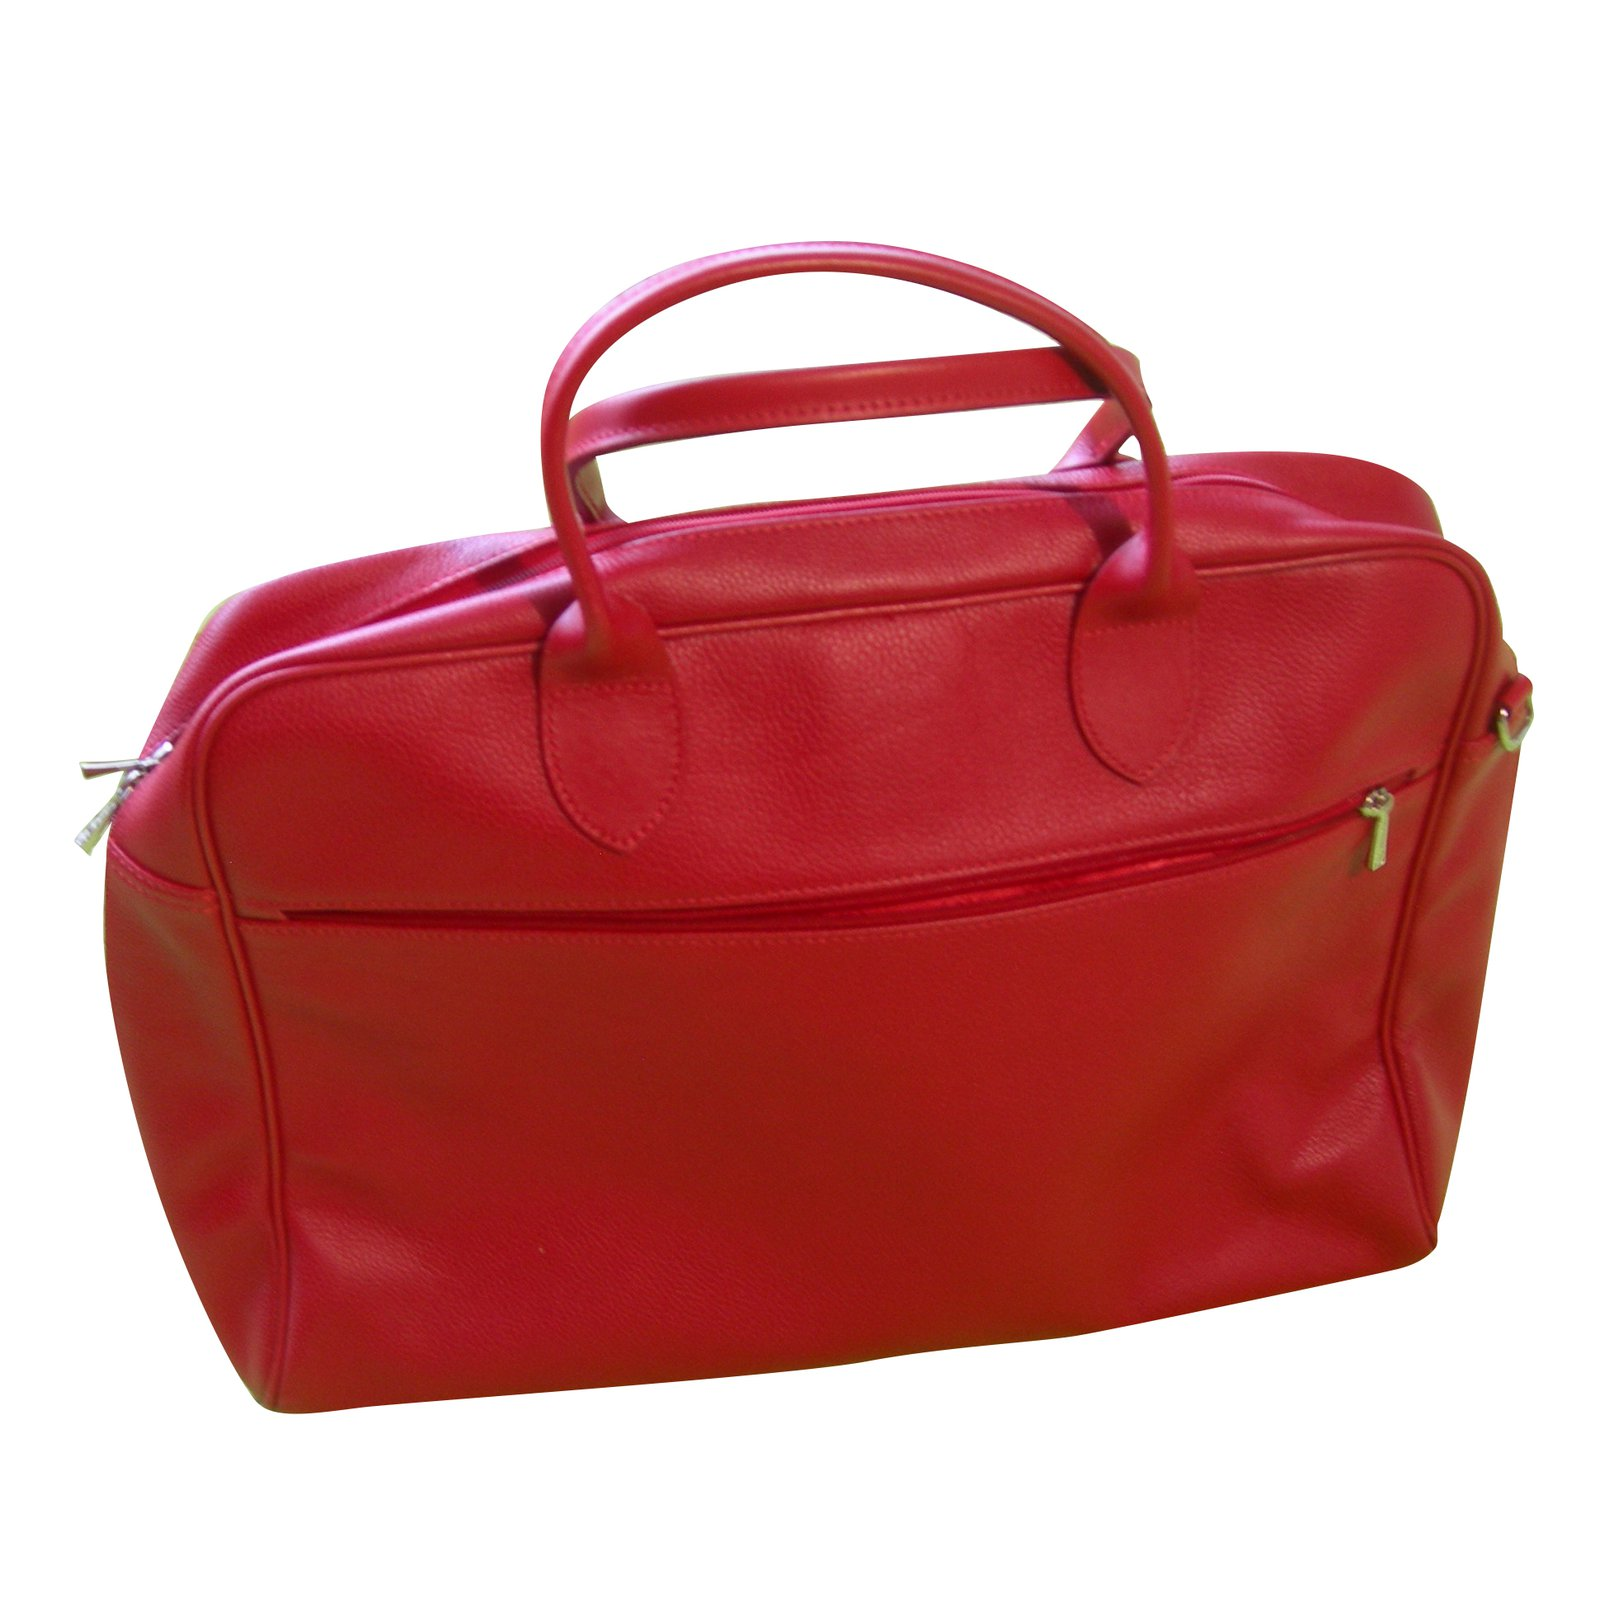 Foulonné Red Leather Le Ref Borsette Longchamp Briefcase 7UtTwqHHn